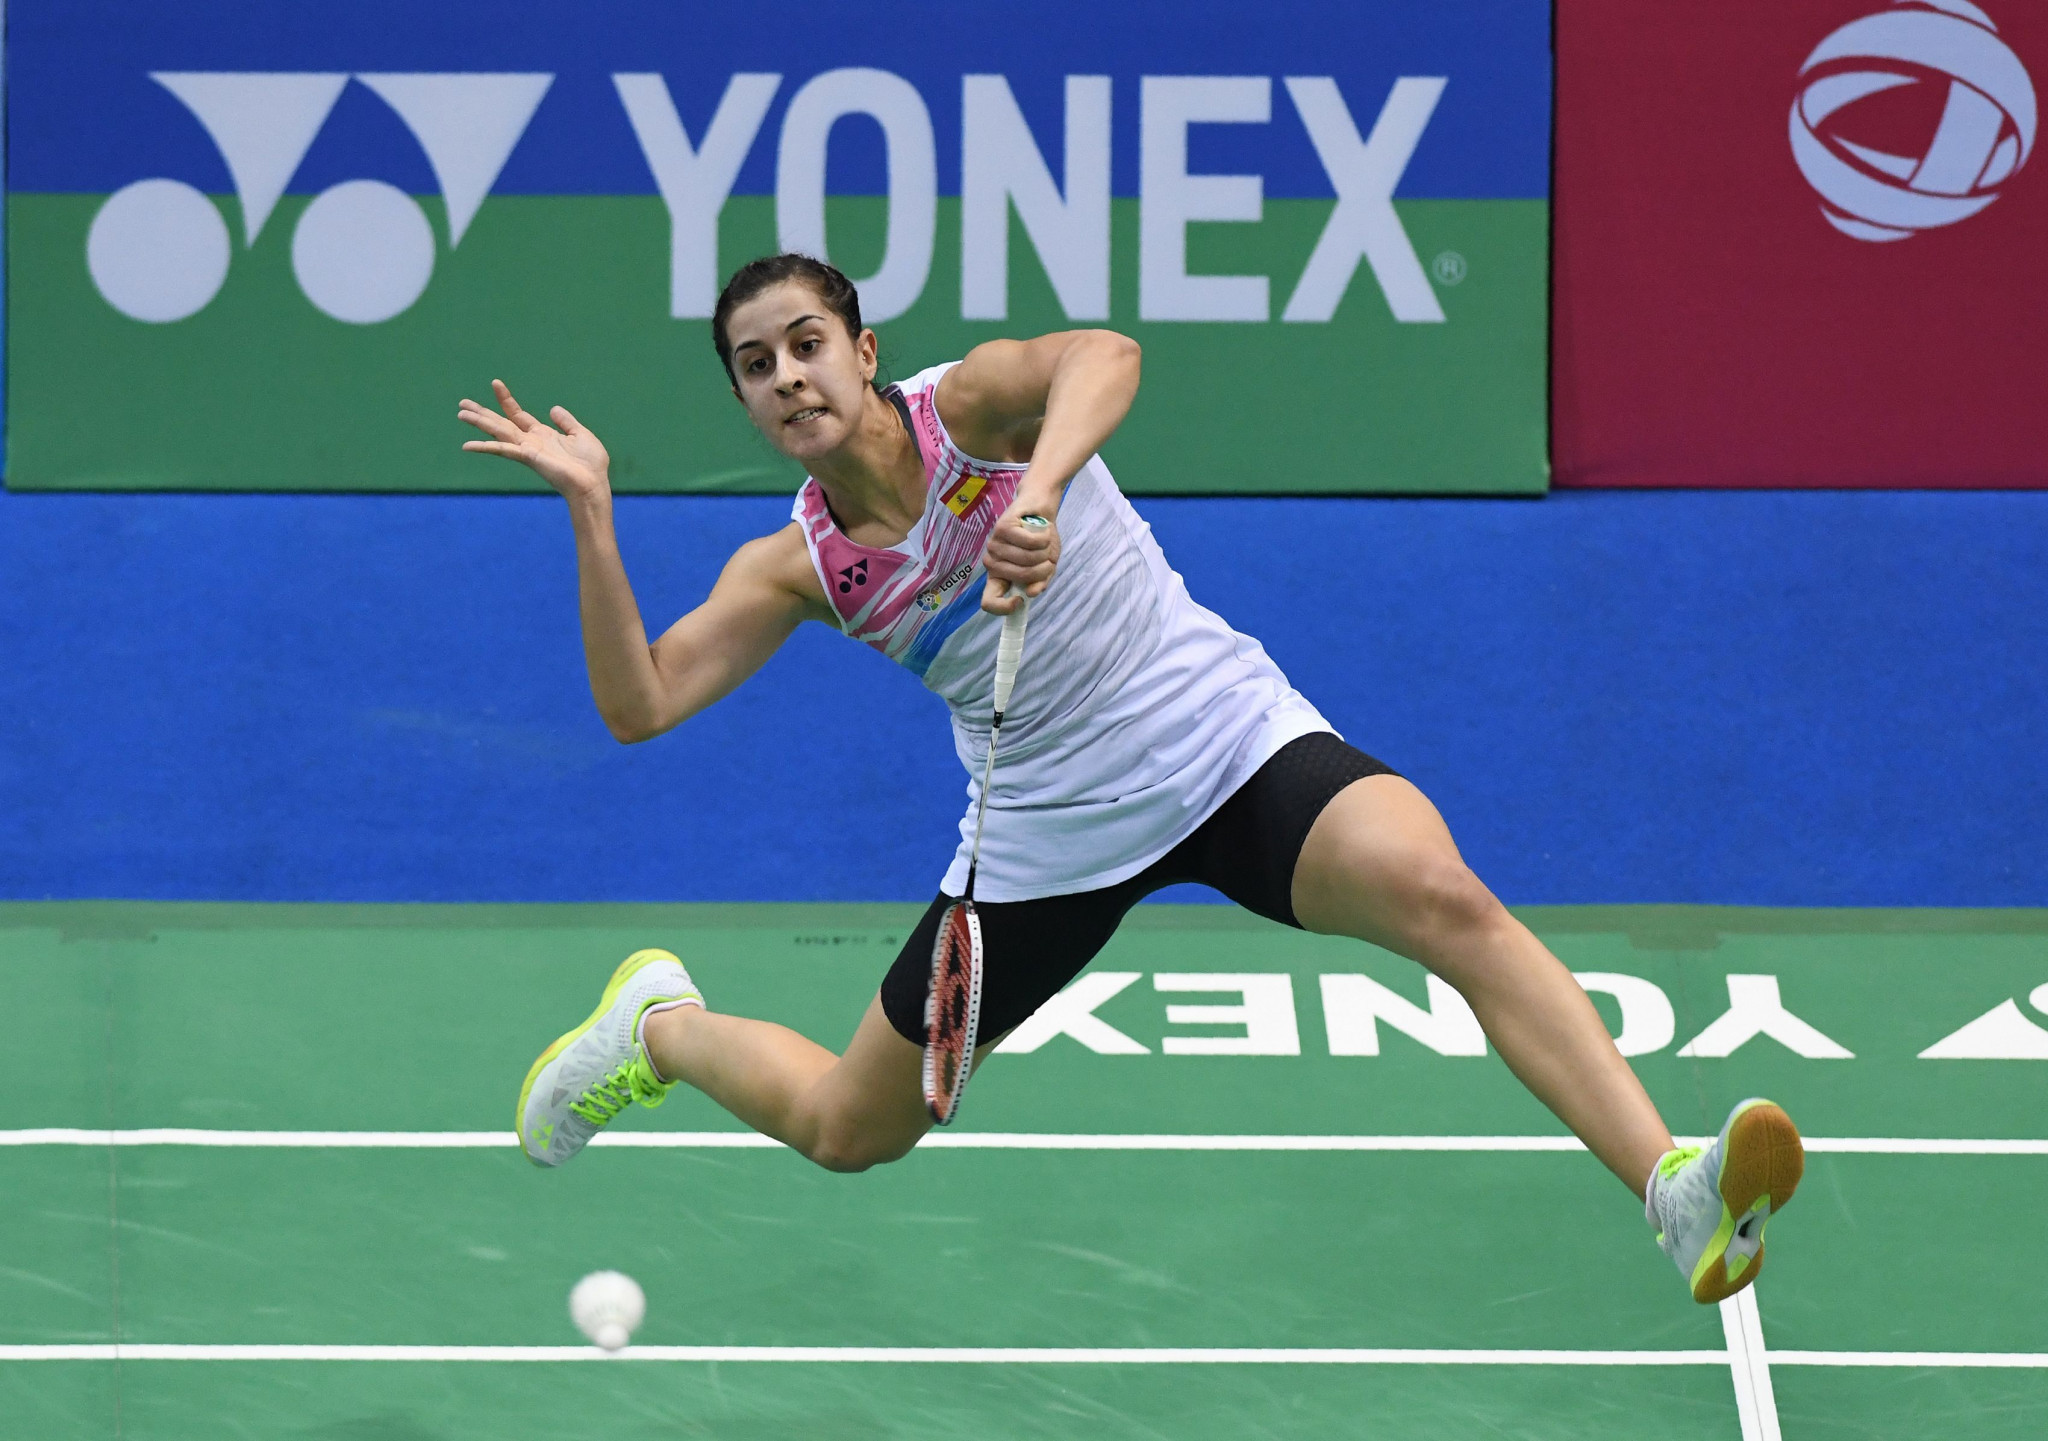 Olympic champion Marin hoping for home triumph at European Badminton Championships